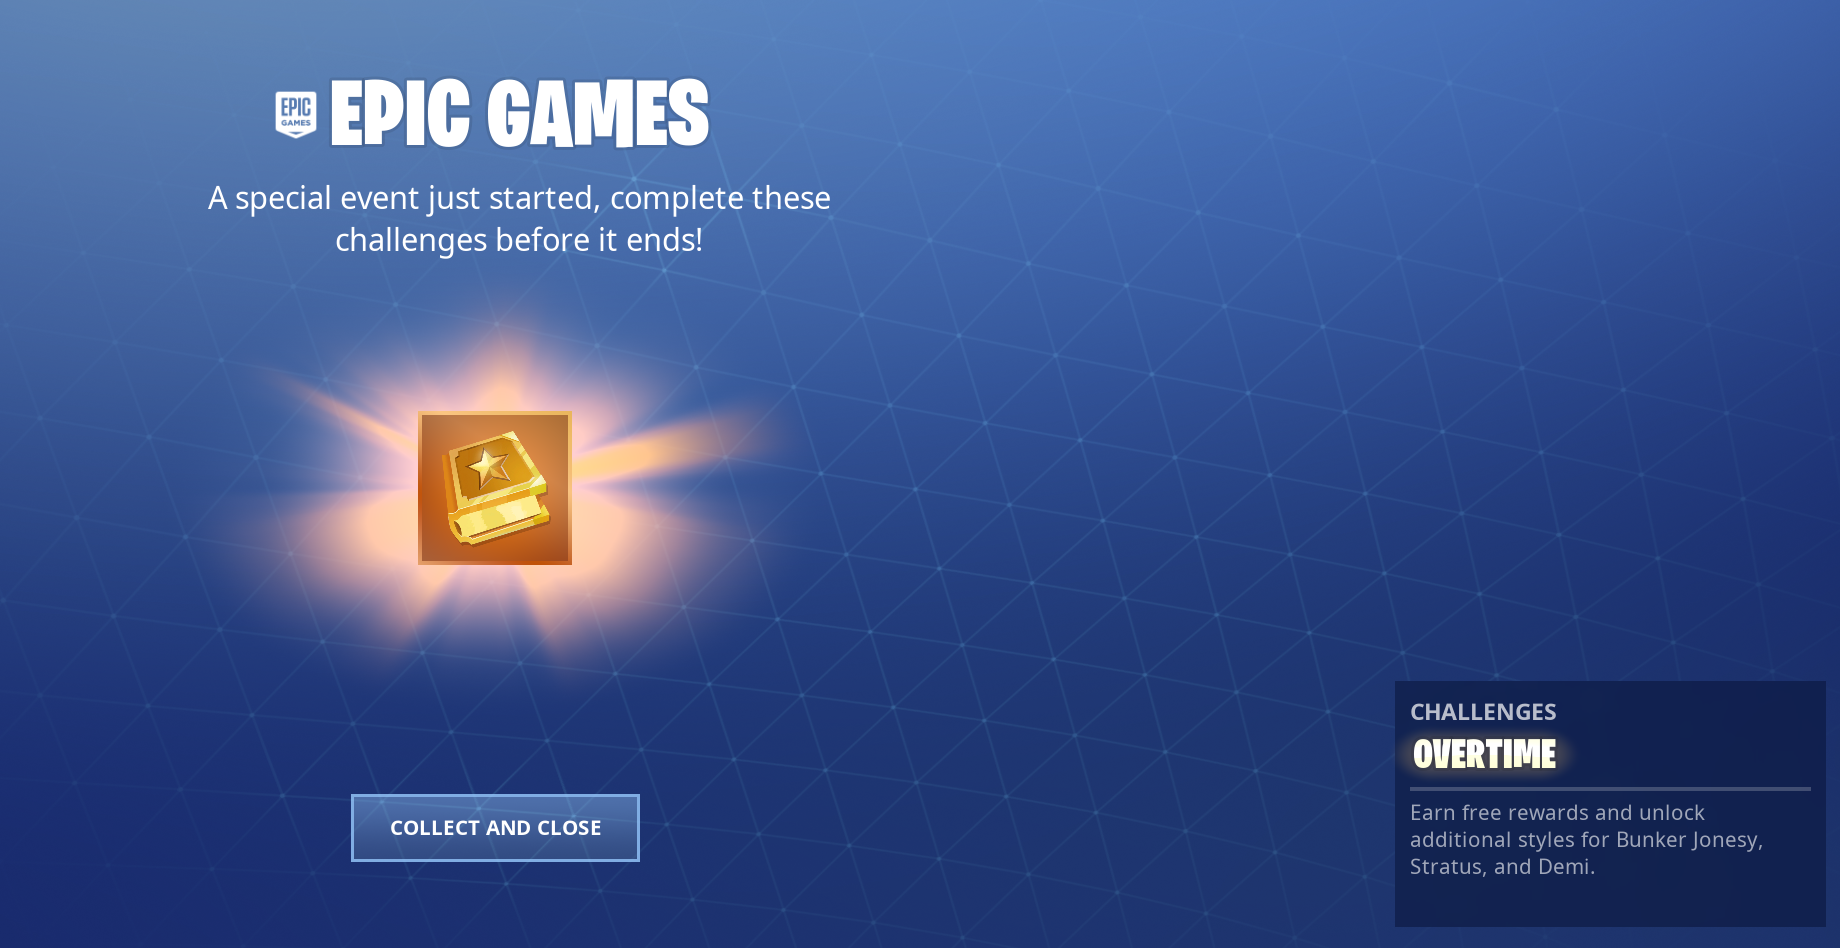 Fortnite Season 9 Overtime Challenges And Rewards Now